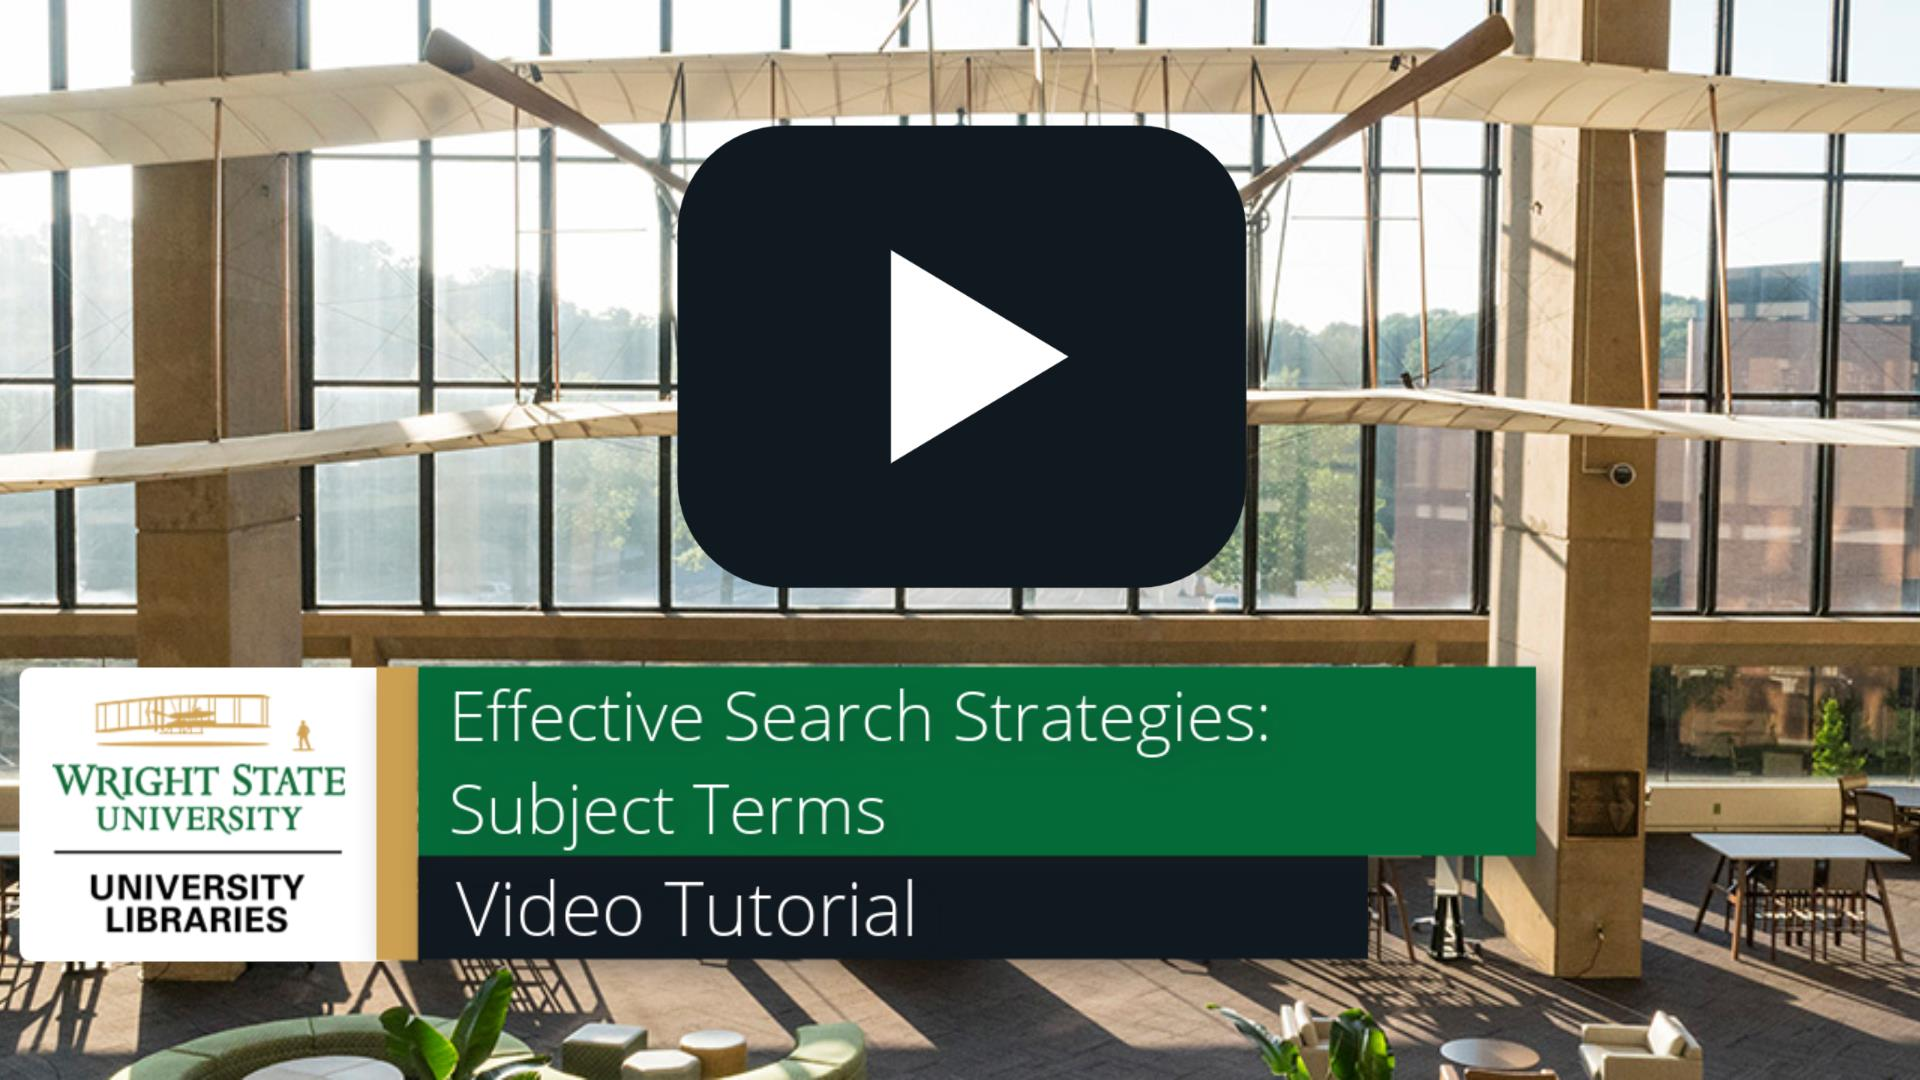 Effective Search Strategies - Subject Terms: Video Tutorial